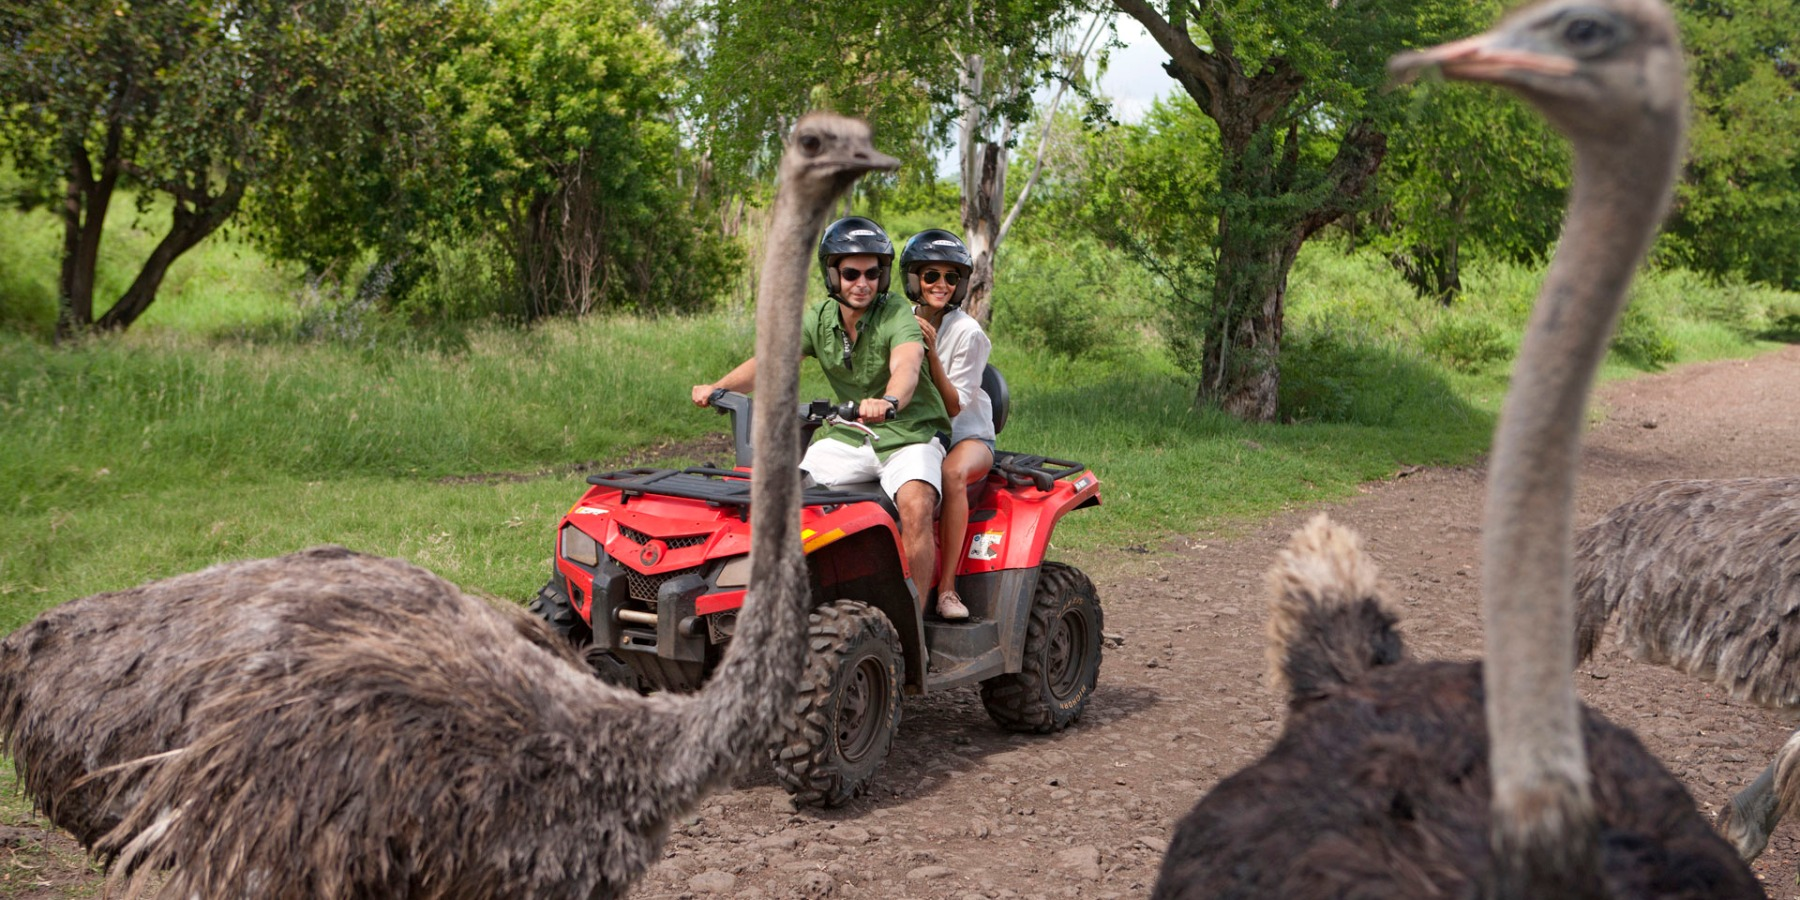 Special Quad Biking Offers at Casela